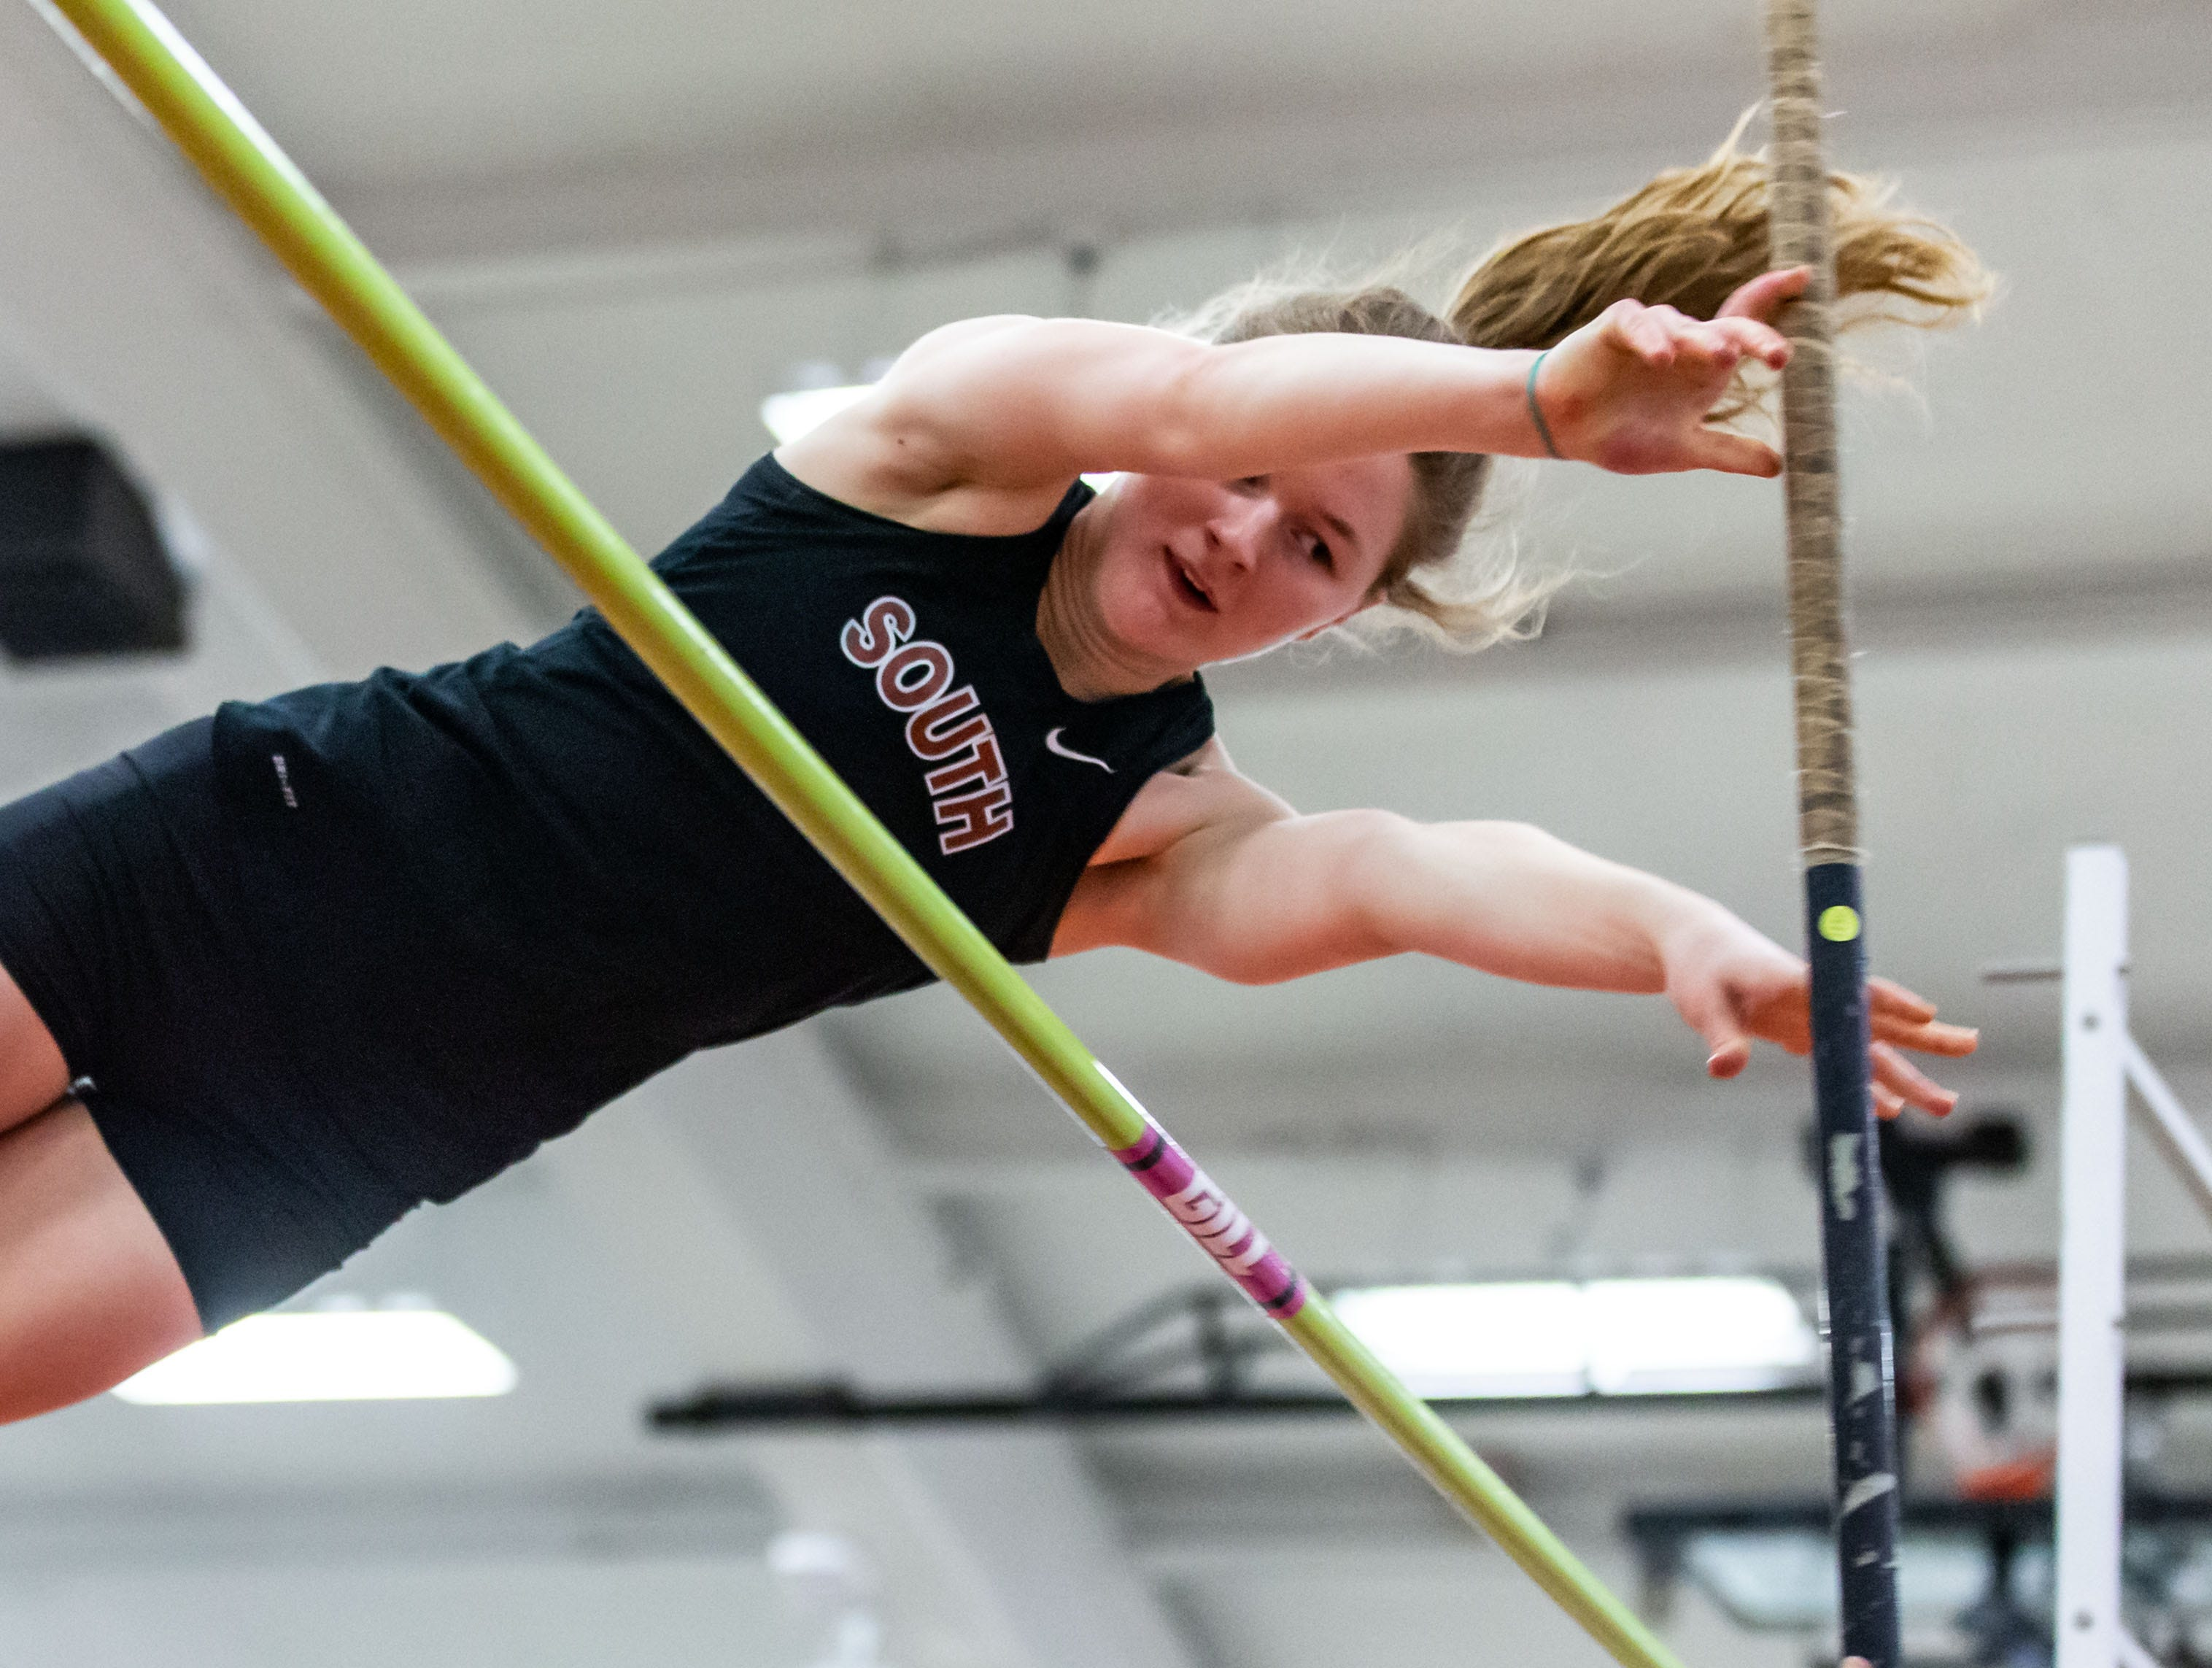 Waukesha South's Sam Pilon competes in the pole vault at the Peter Rempe Cardinal Relays hosted by Waukesha South on Thursday, March 21, 2019. Pilon tied for second in the event with a vault of 9-00.00.